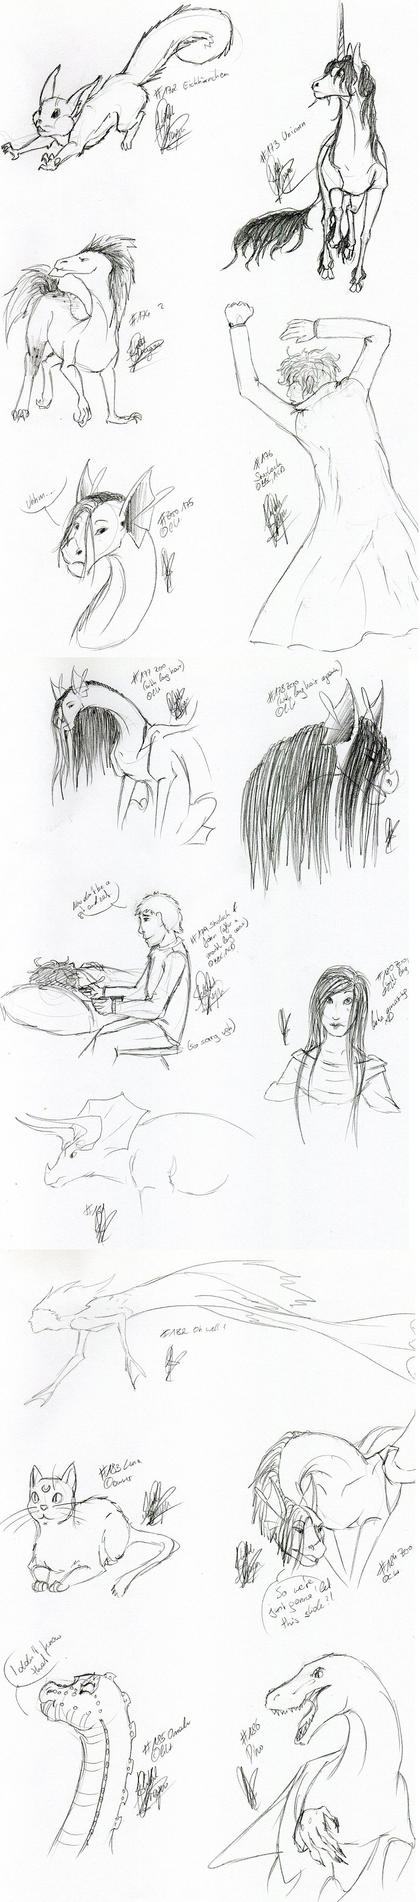 Sketchaday Dump 18 by Eiswolf-Zero